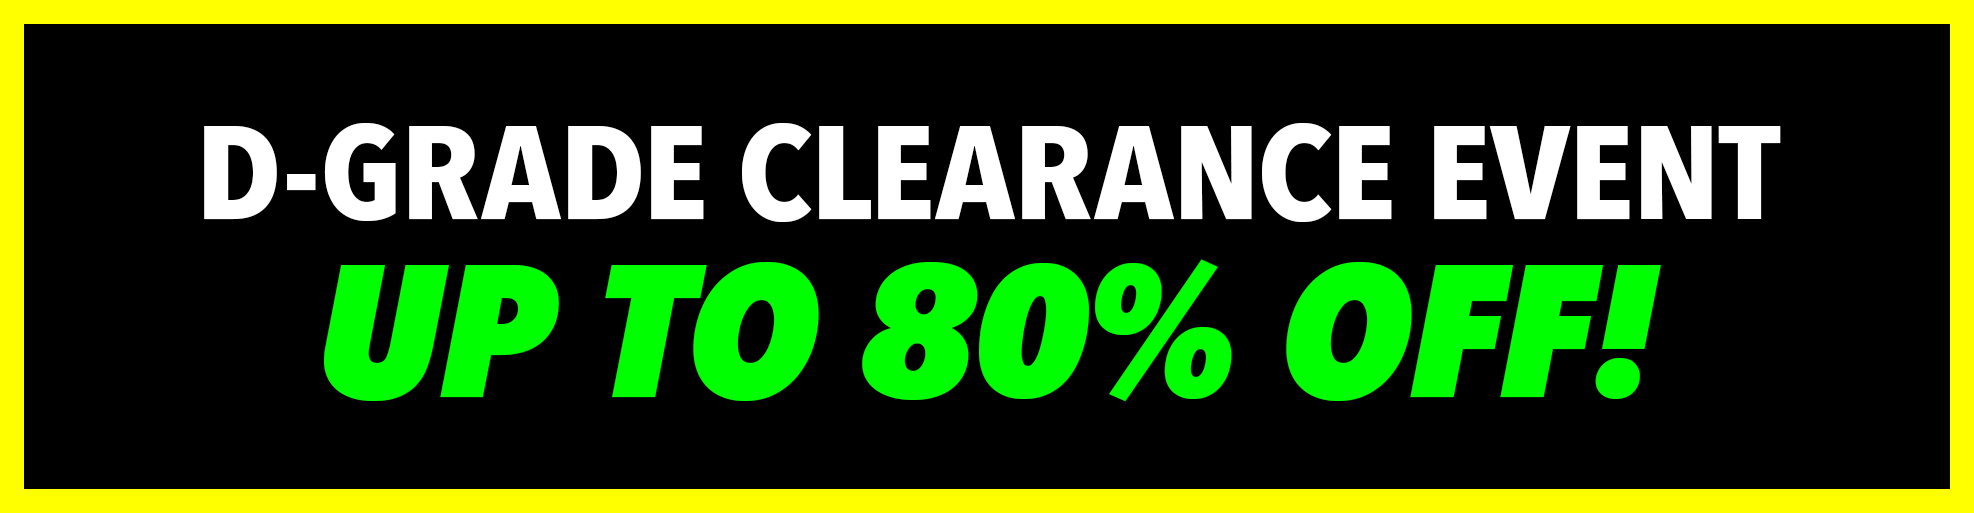 D-Grade-Clearance.png